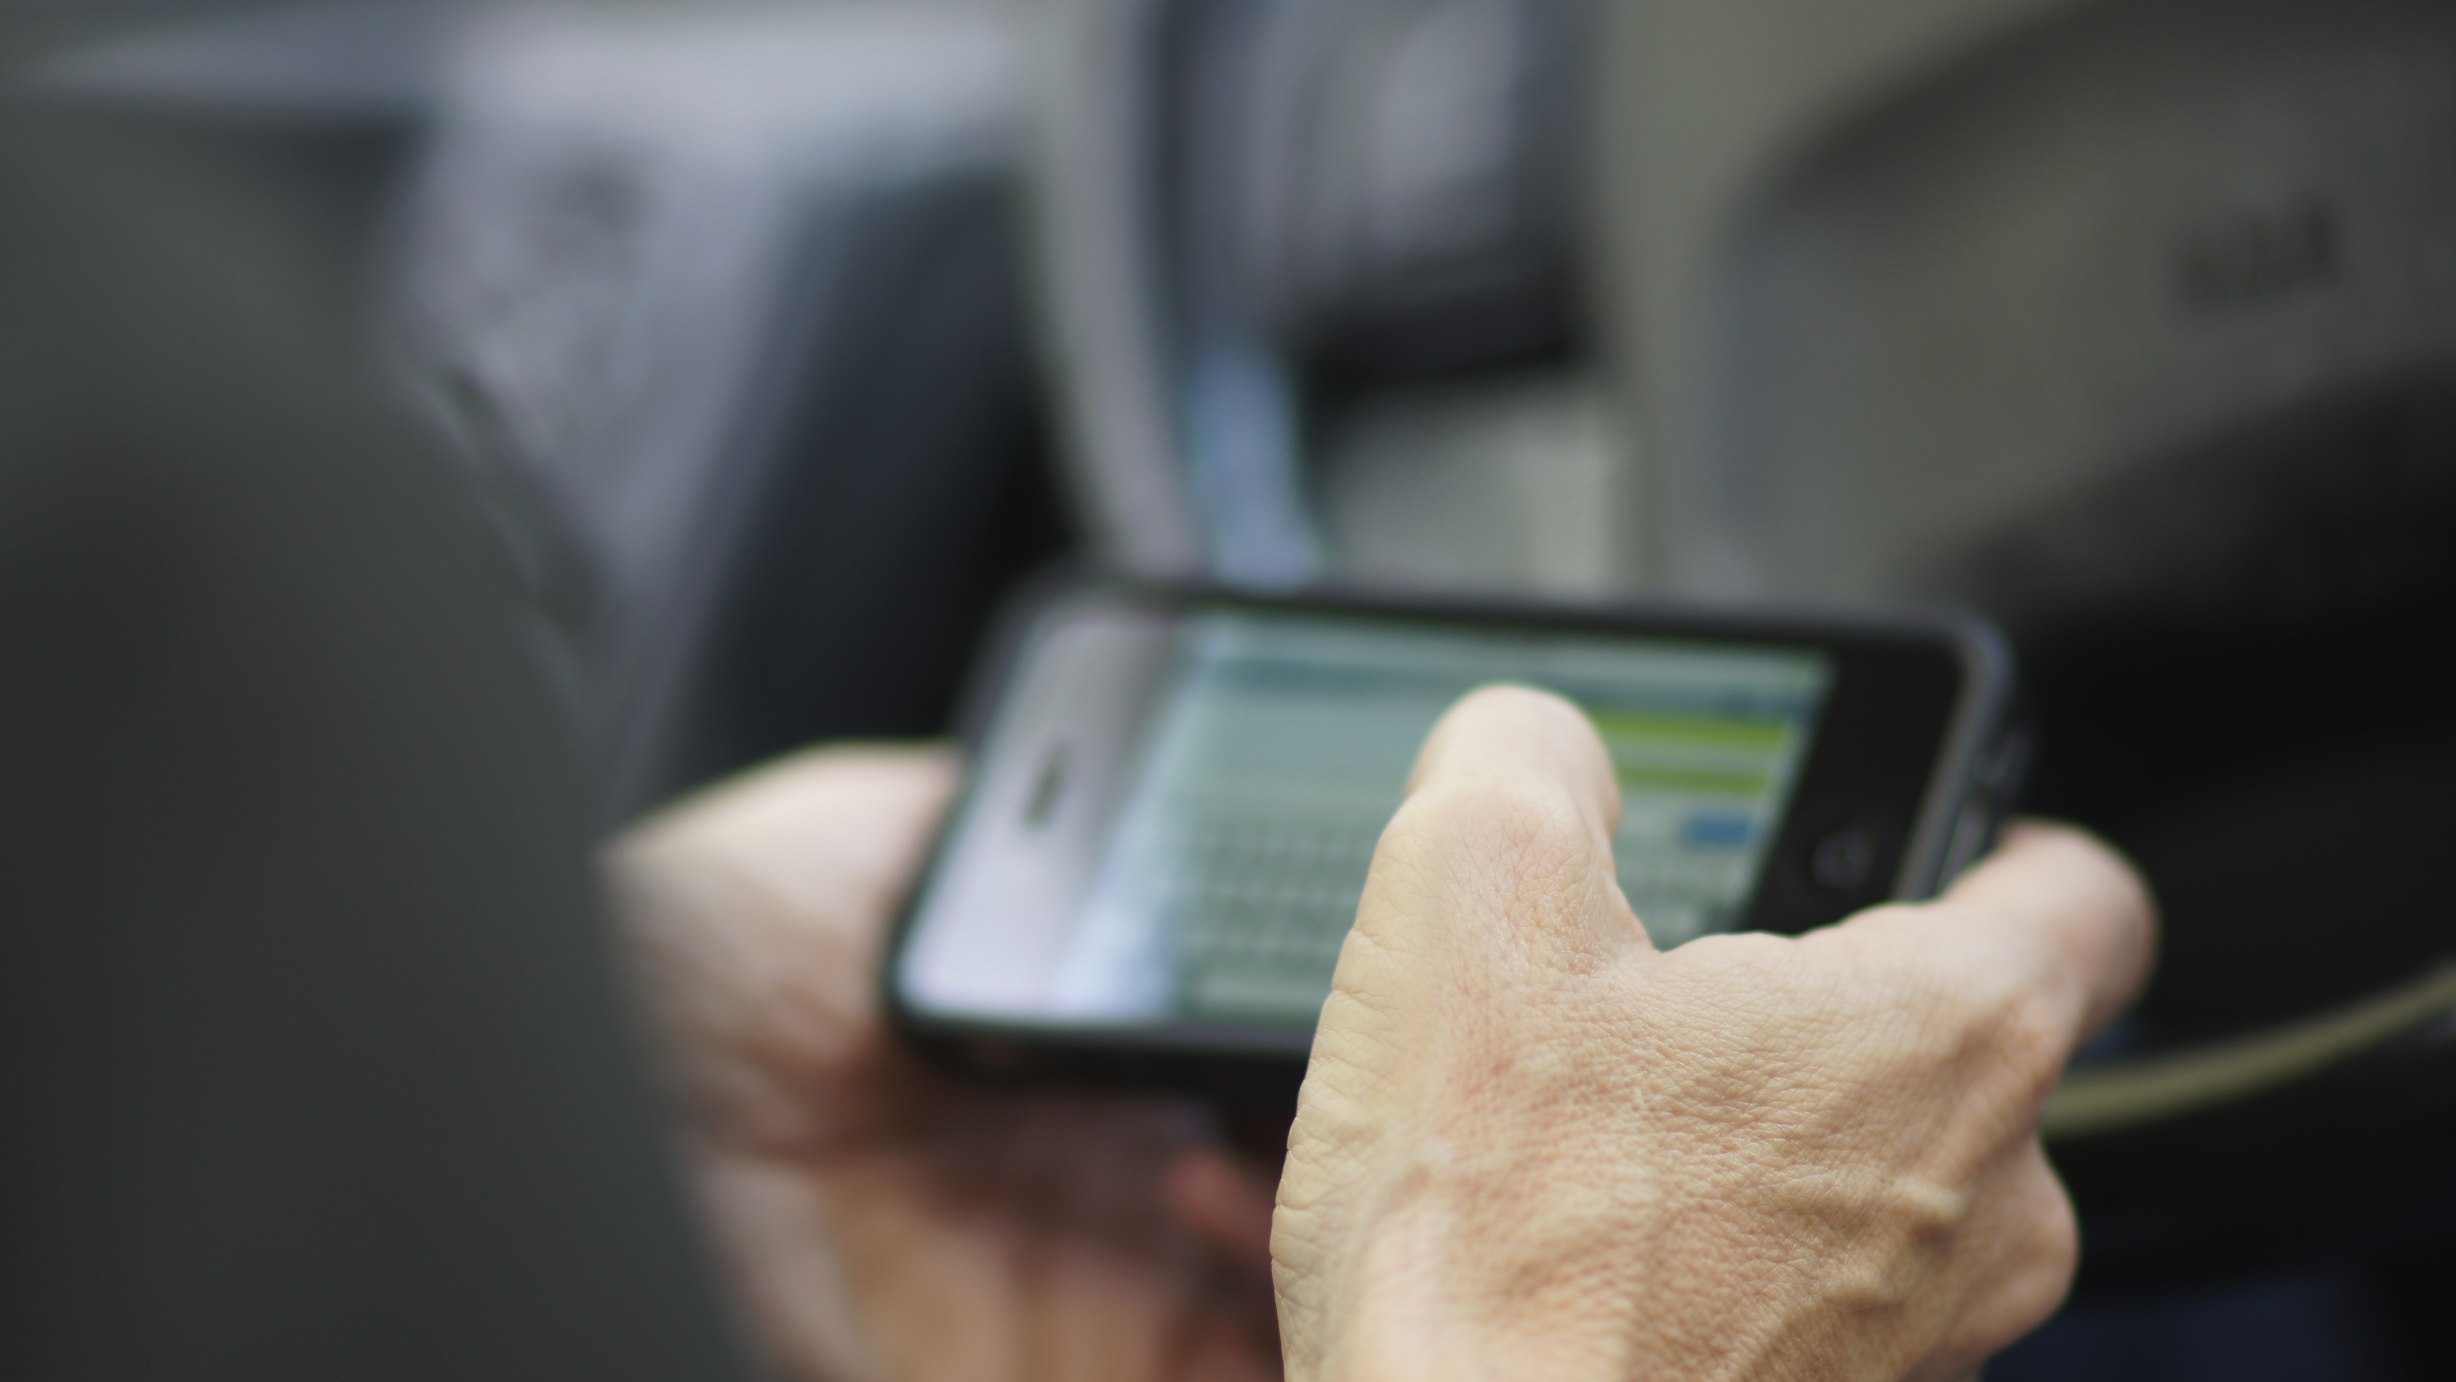 On July 1, House Bill 1360 went into effect, prohibiting the use of certain hand-held electronic devices while driving. This includes while a vehicle is in motion or while it is temporarily halted in traffic.To view the full bill, click here.